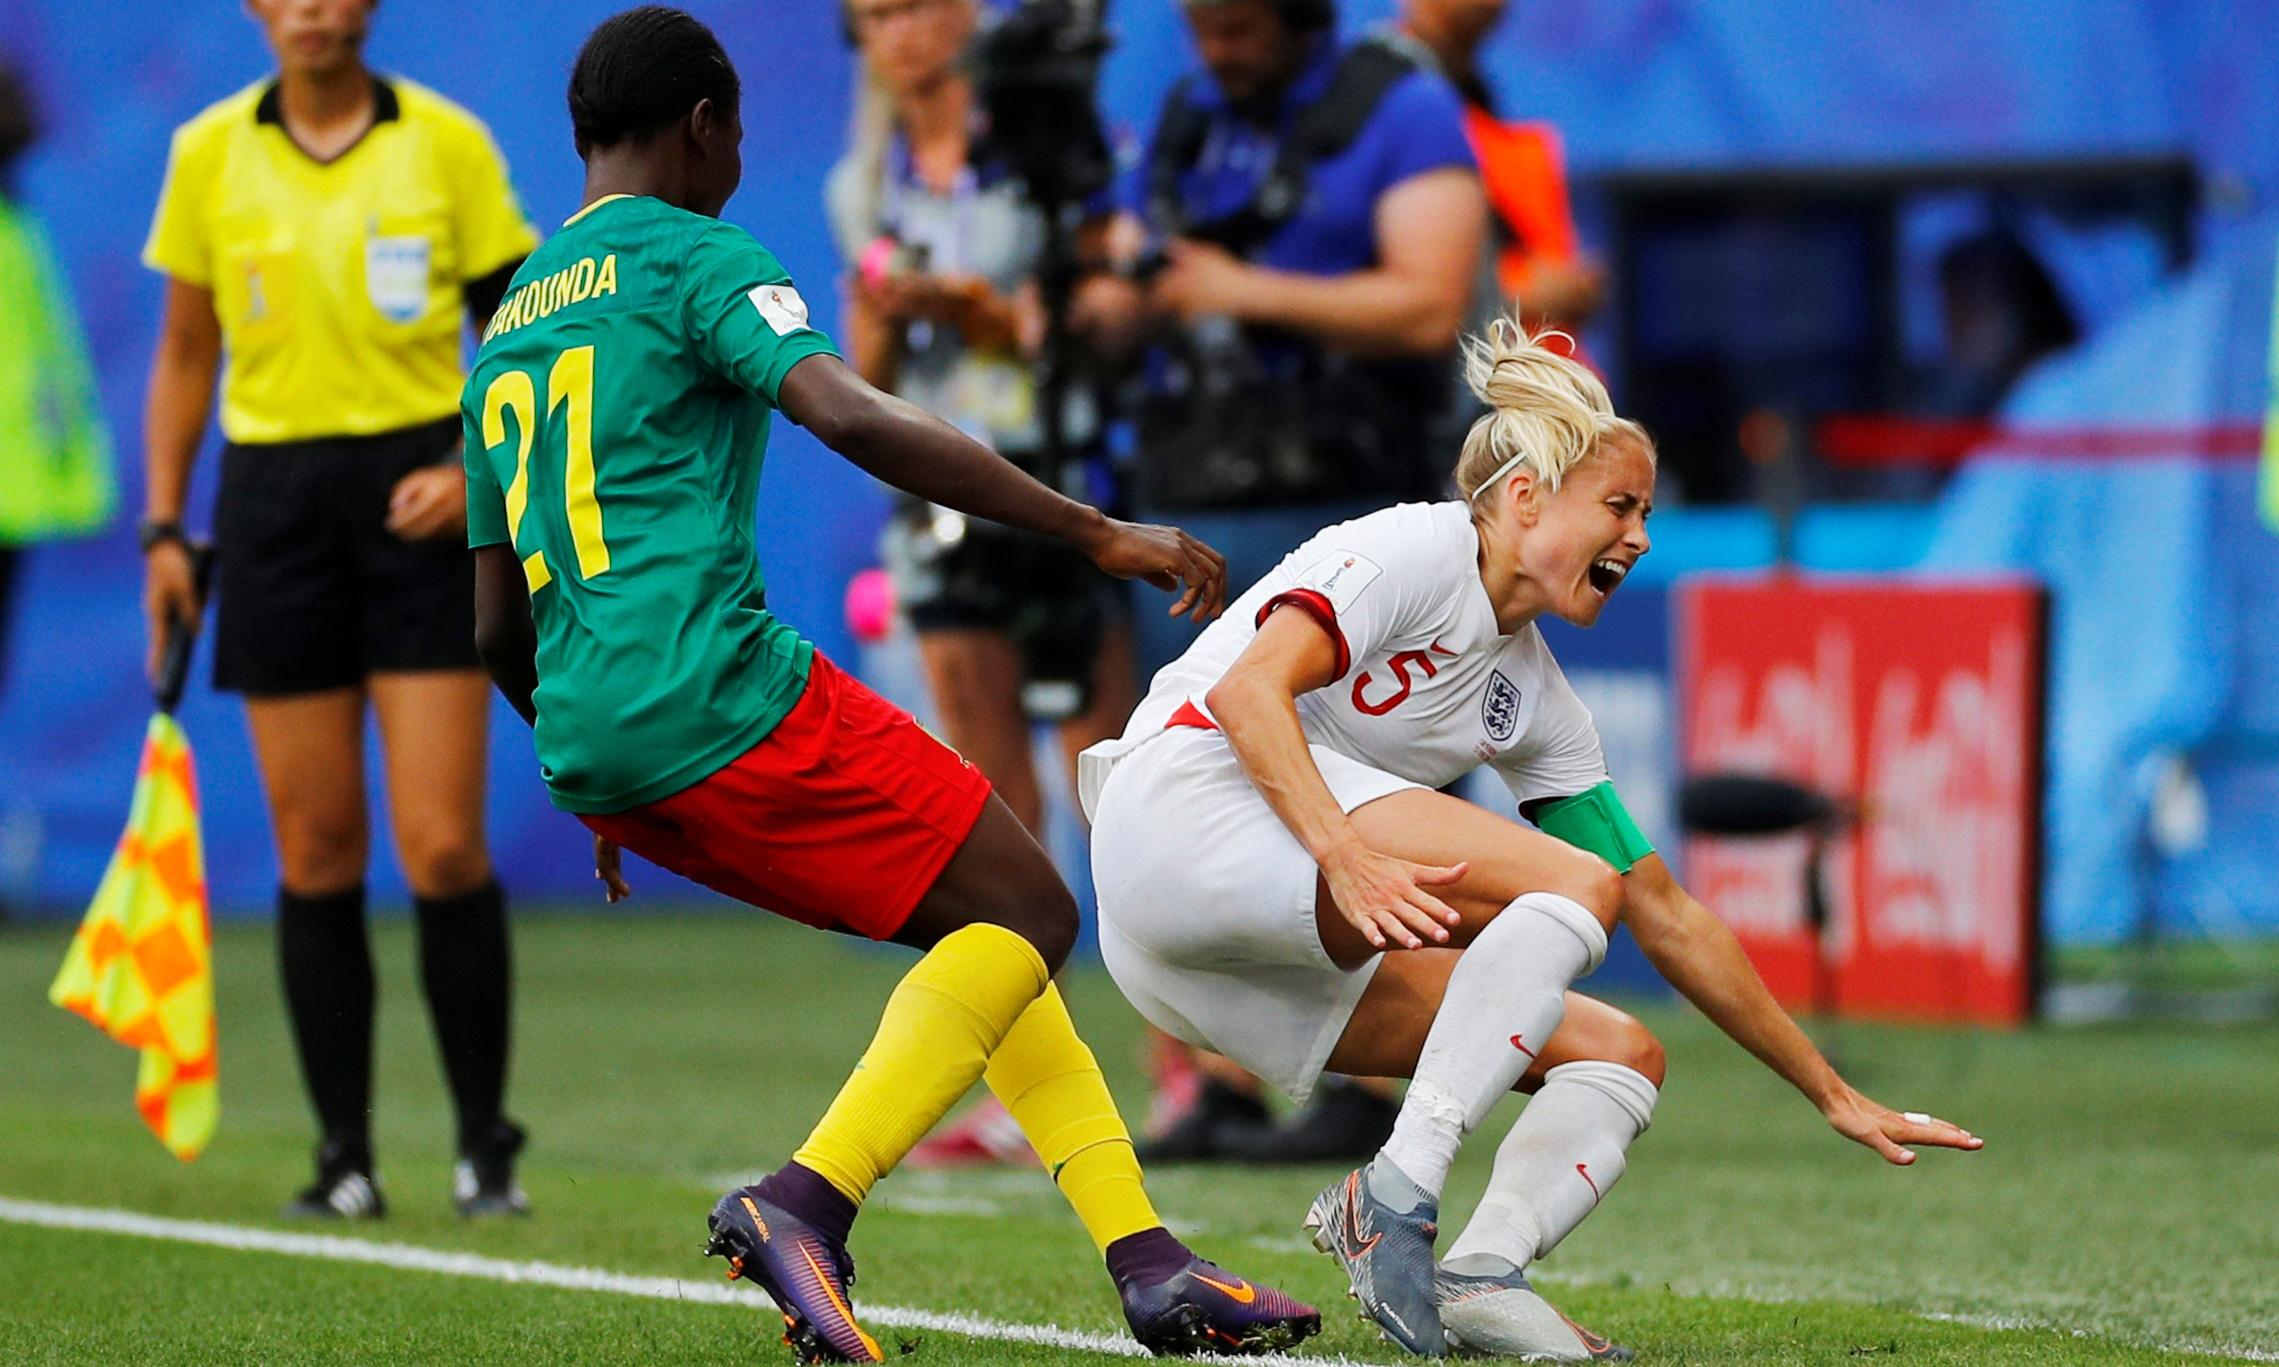 England's refusal to be bullied by Cameroon cannot hide concerns